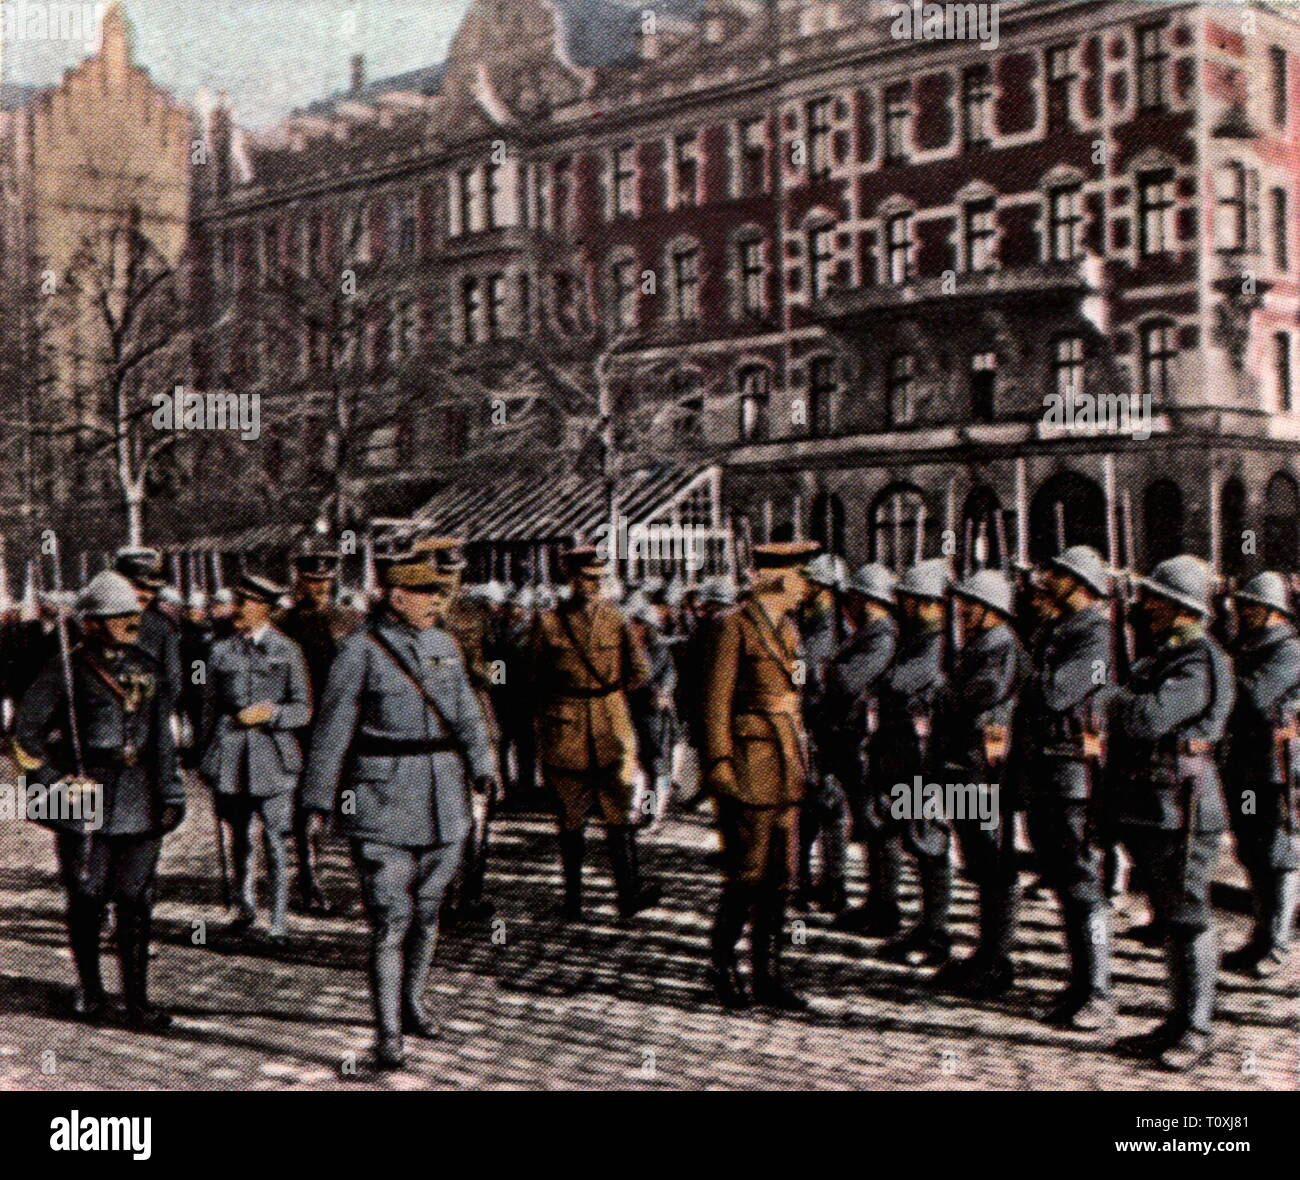 politics, Inter-Allied occupation in Gdansk, parade French troops on the Oliva-Platz, 19.2.1920, coloured photograph, cigarette card, series 'Die Nachkriegszeit', 1935, Free City of Danzig, Oliva square, free state, free states, League of Nations, clause of the treaty of Versailles, Treaty of Versailles, military, entente, French, soldiers, soldier, people, Prussia, Germany, German Reich, Weimar Republic, 1920s, 20th century, politics, policy, parade, parades, coloured, colored, post war period, post-war period, post-war years, post-war era, hist, Additional-Rights-Clearance-Info-Not-Available - Stock Image